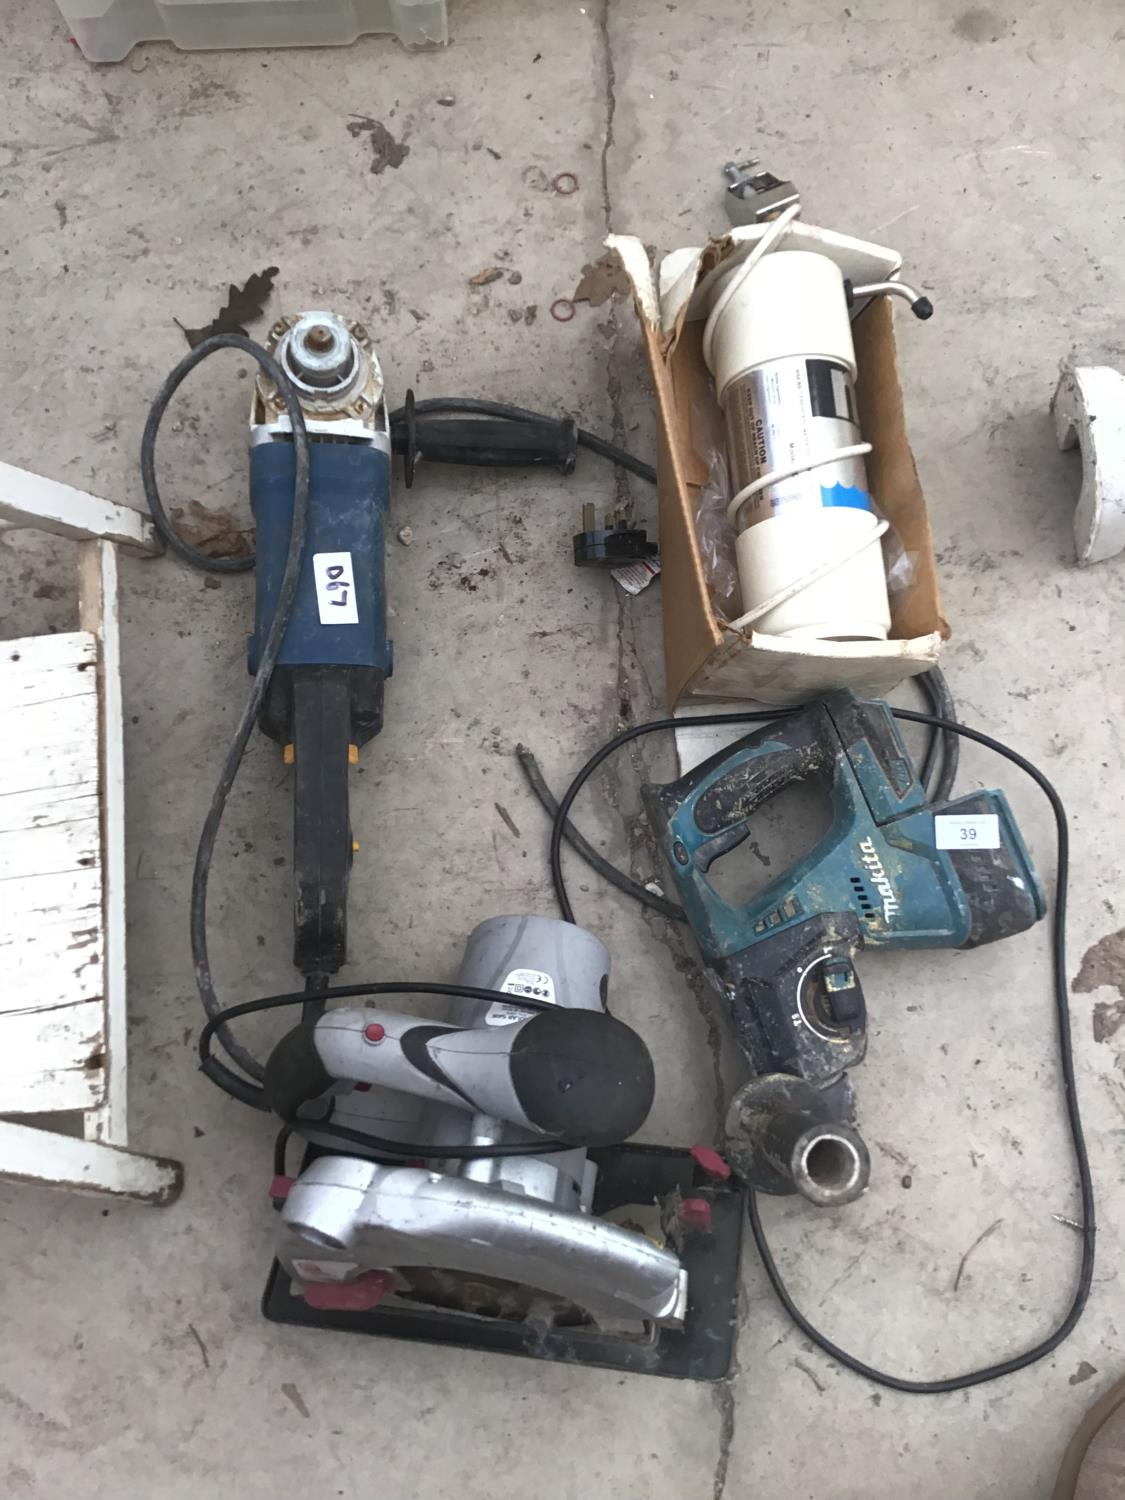 Lot 39 - FOUR POWER TOOLS TO INCLUDE A MAKITA DRILL, ANGLE GRINDER, ELECTRIC CIRCULAR SAW ETC SAW IN